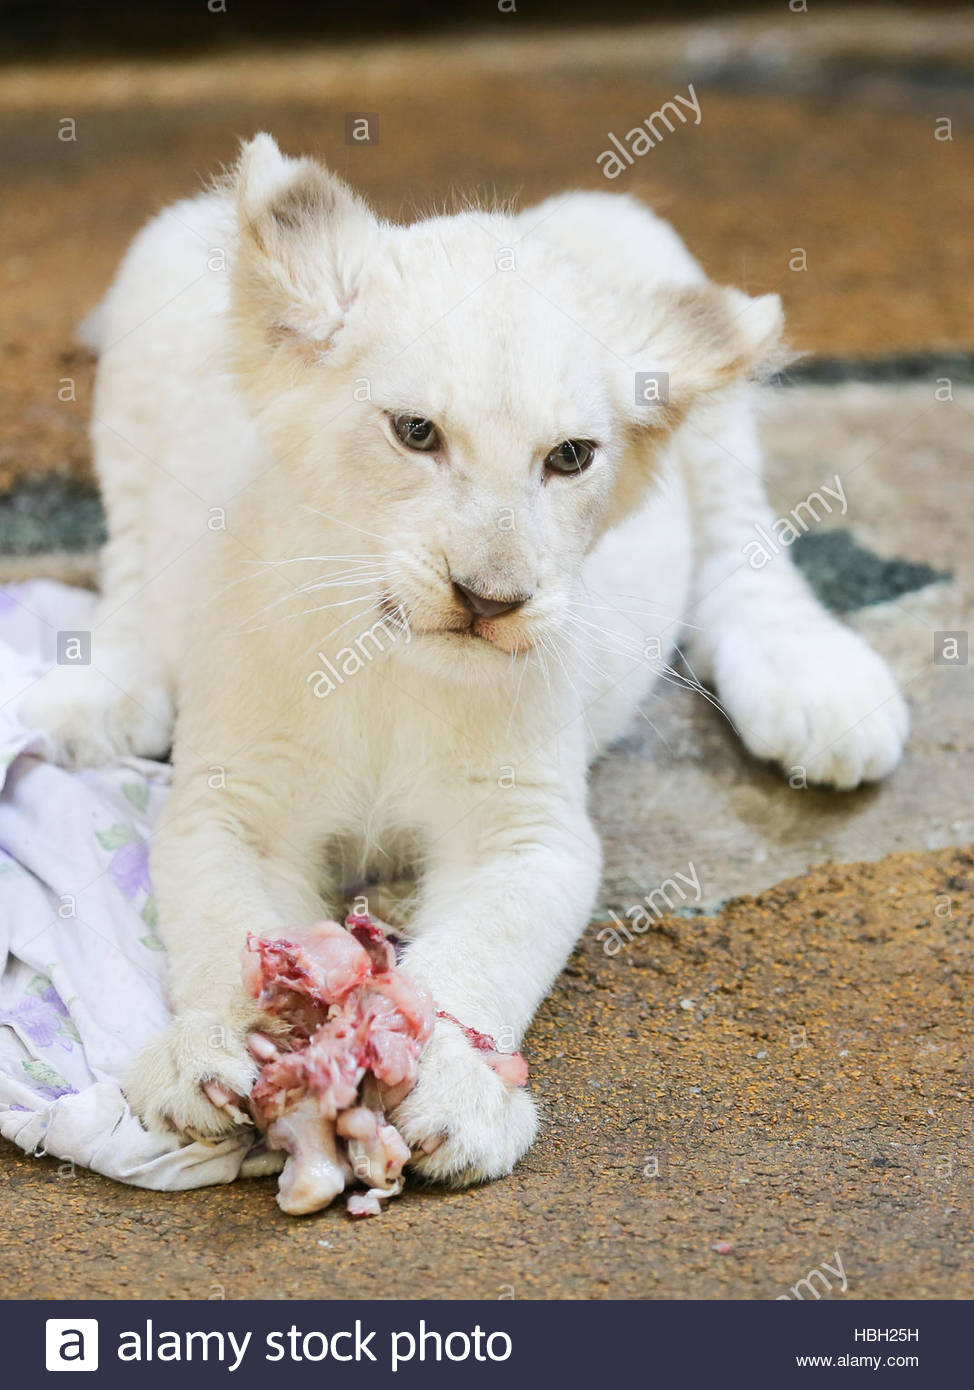 white female lion cub in zoo magdeburg HBH25H